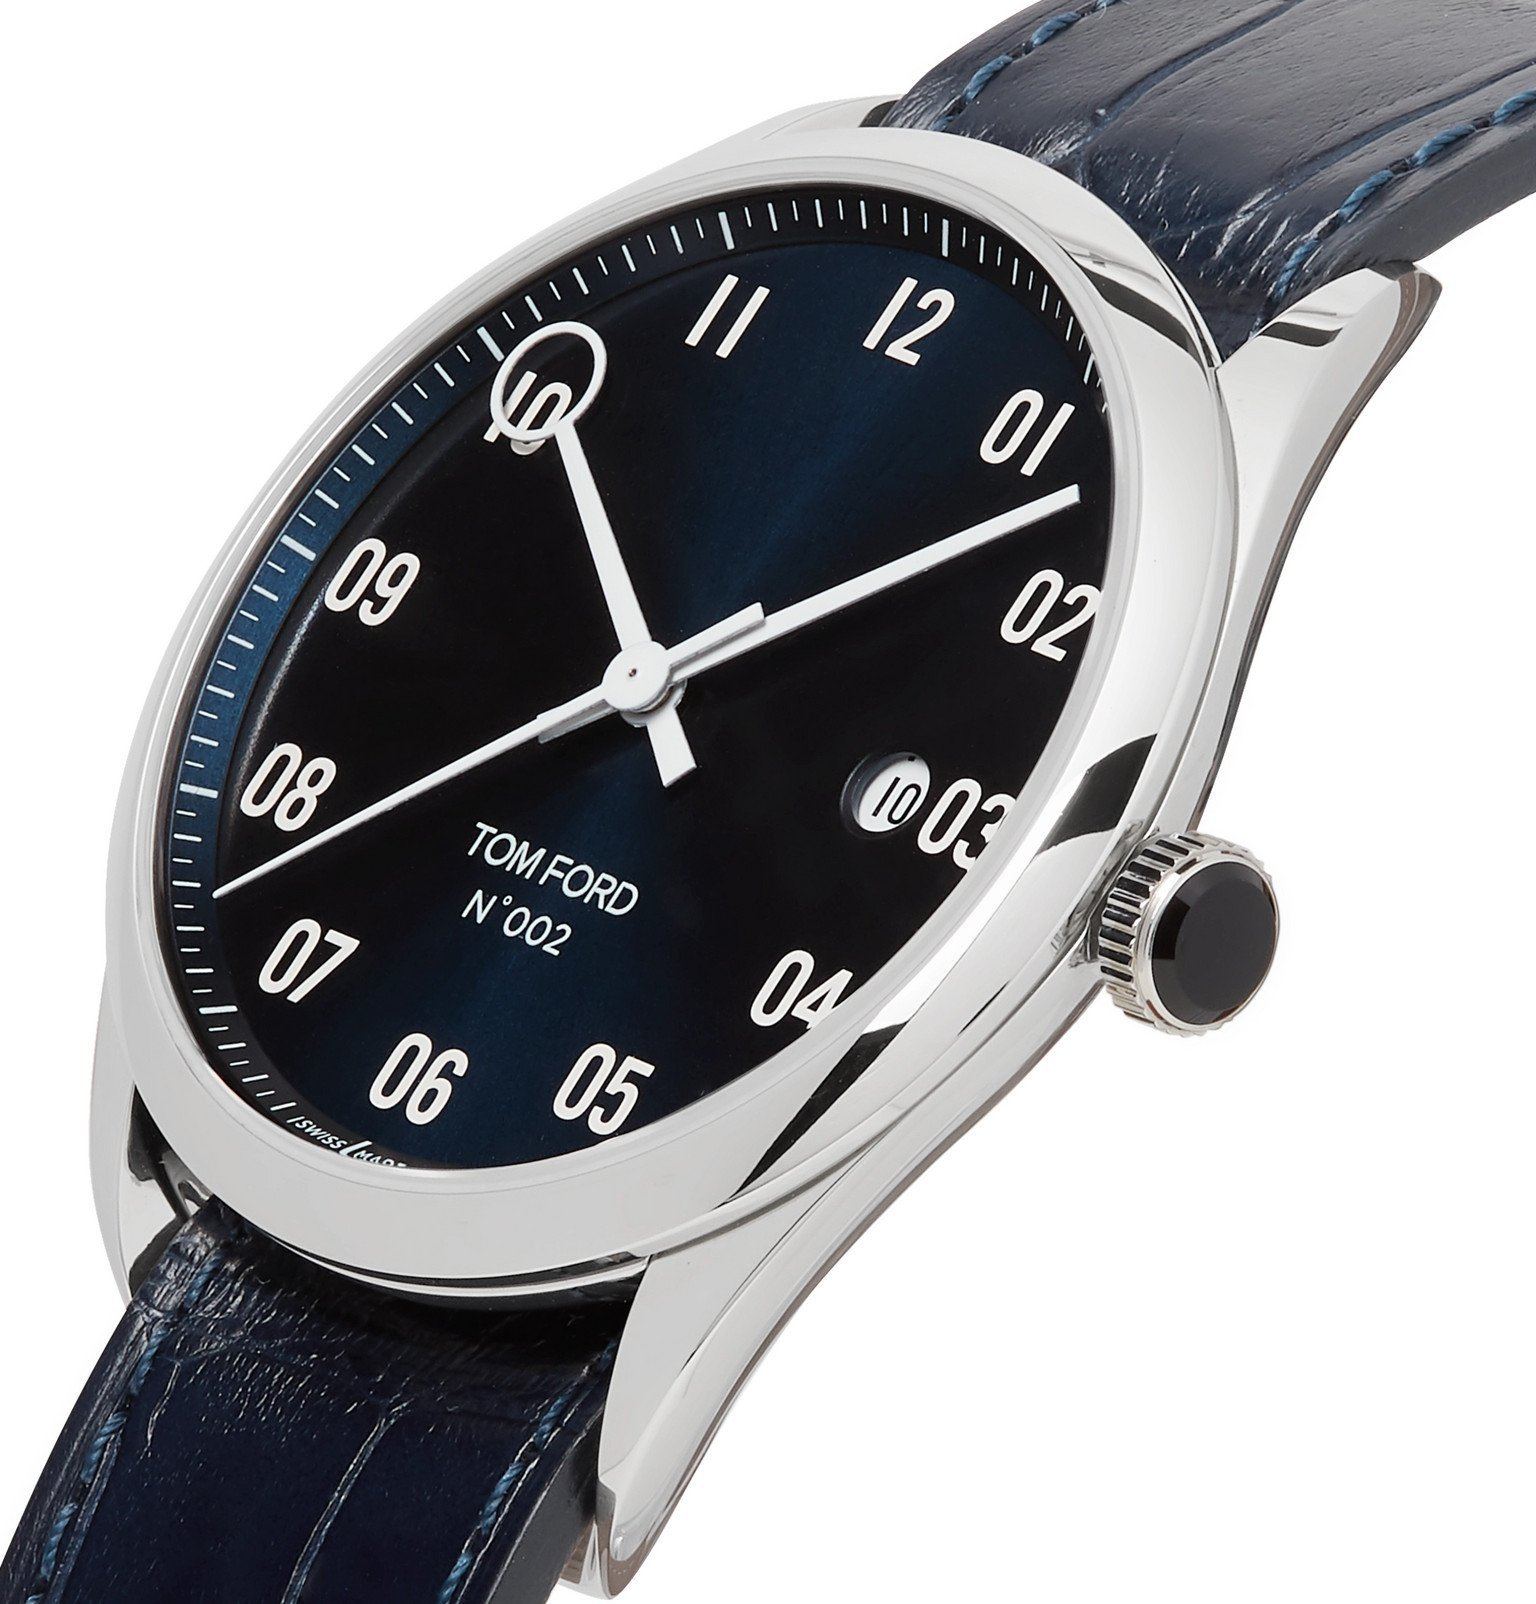 Tom Ford Timepieces - 002 40mm Stainless Steel and Alligator Watch - Blue